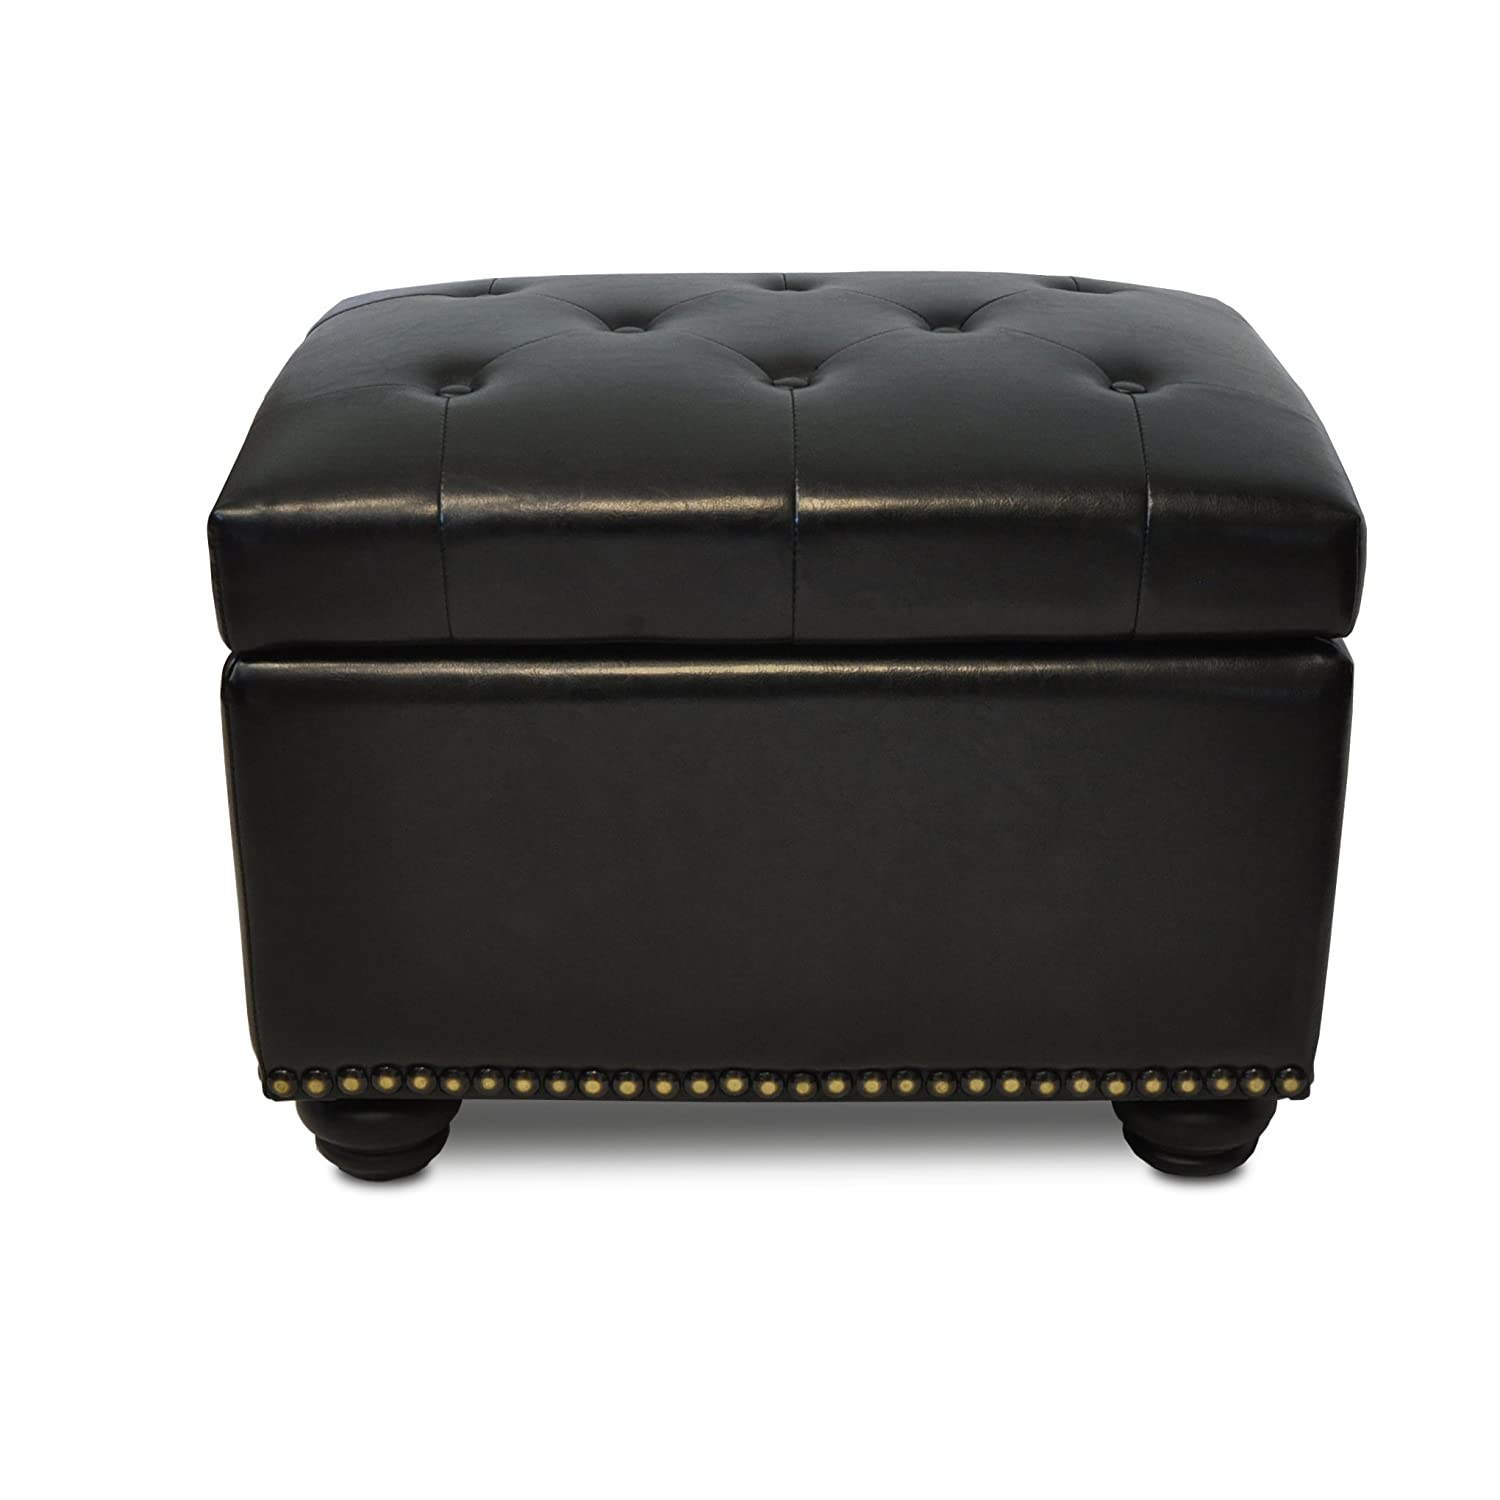 Convenience Concepts Designs4Comfort Storage Ottoman, Black